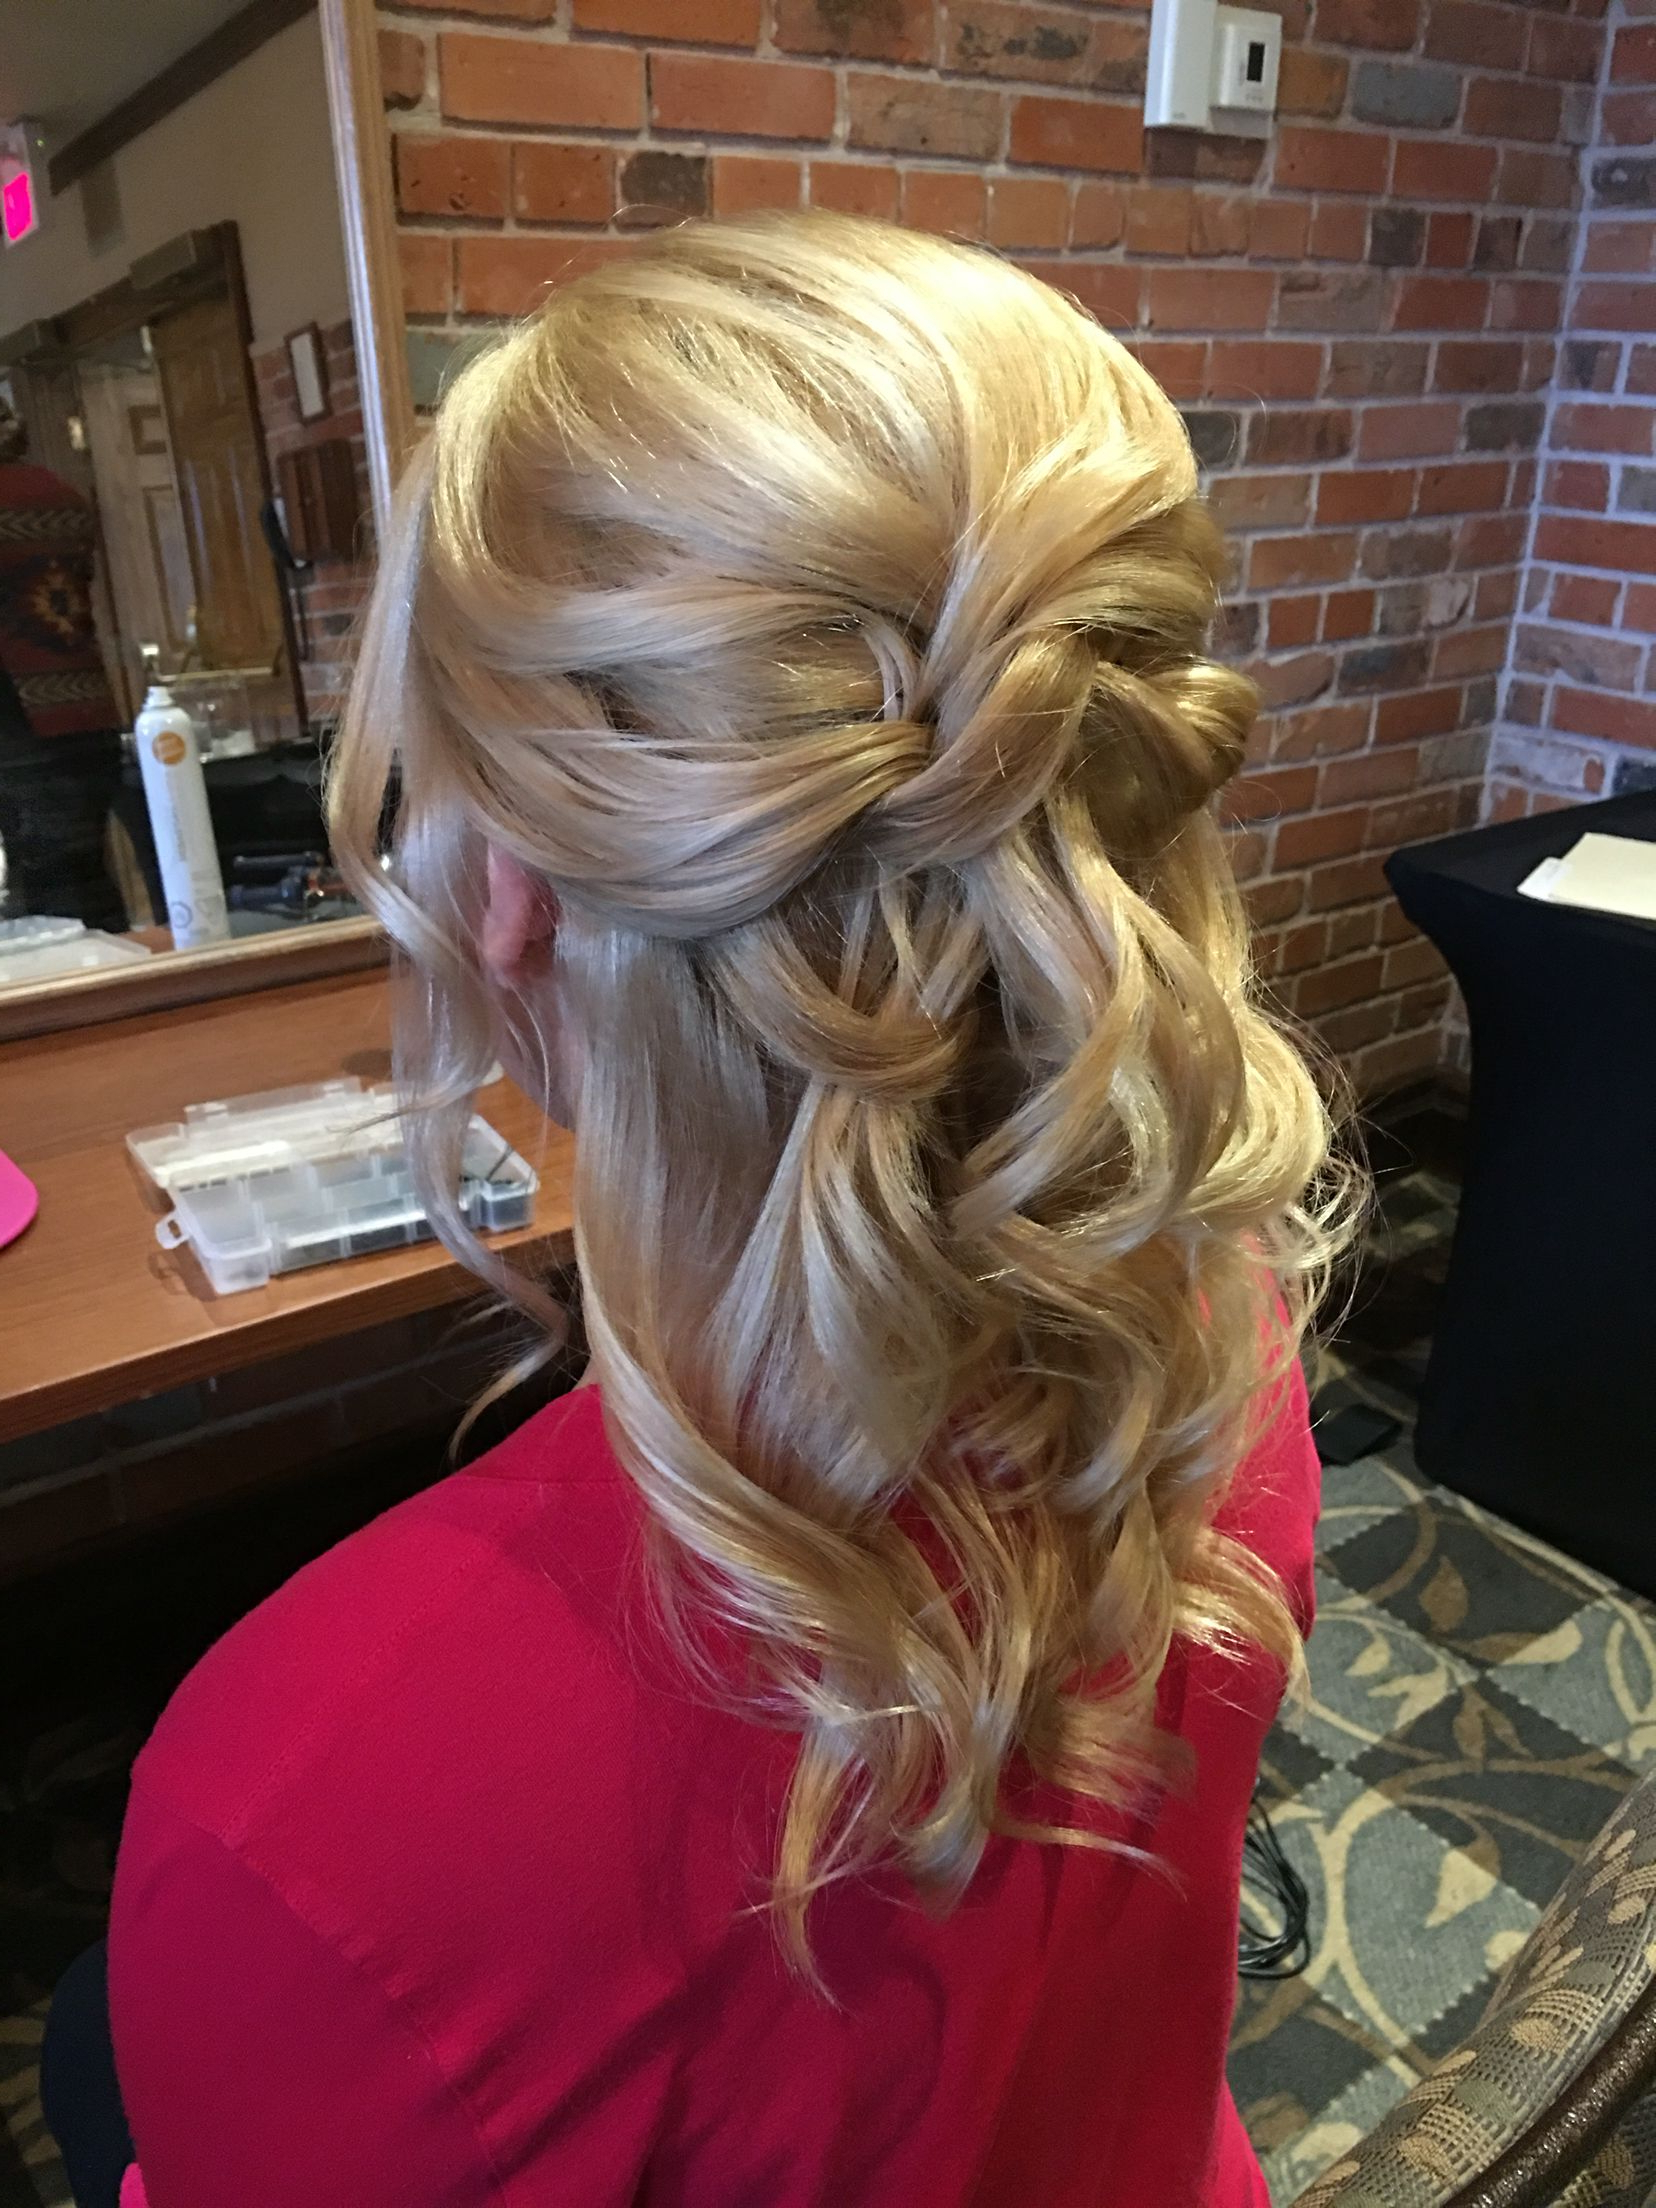 Half Up Half Down Wedding Hair For Bride Or Mother Of The Bride Pertaining To Well Known Platinum Mother Of The Bride Hairstyles (View 4 of 20)